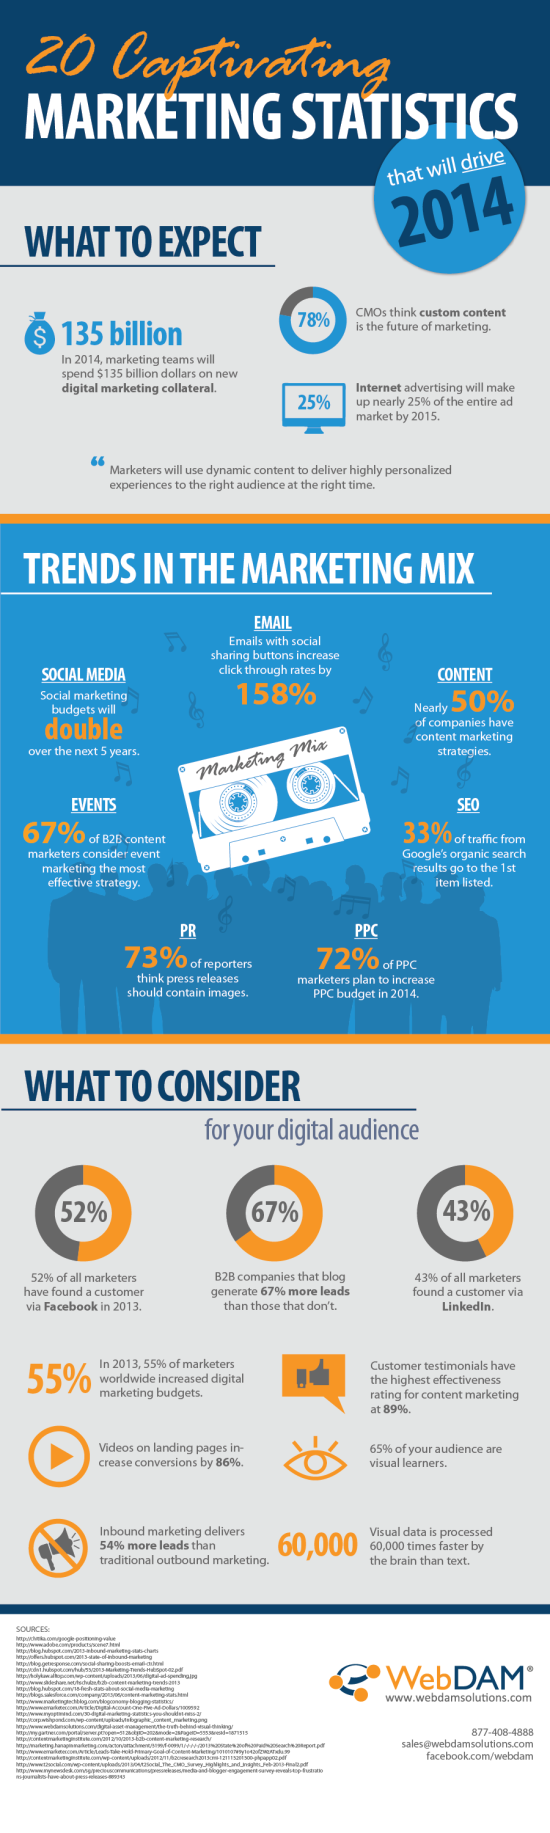 2014 Marketing Trends